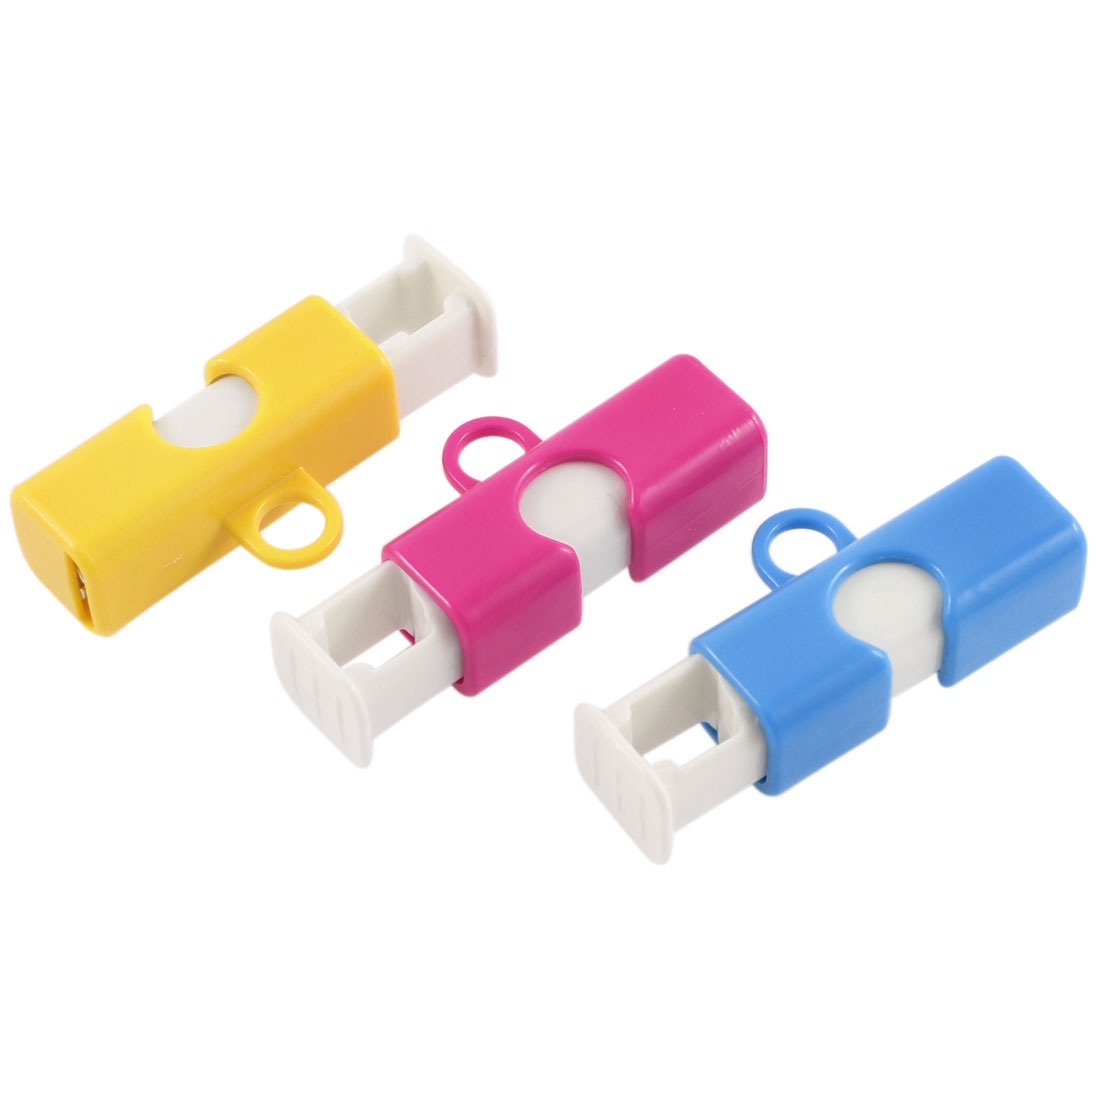 3 Pcs Plastic Storage Bag Clip Holder Kitchen Tool Sealing Clips